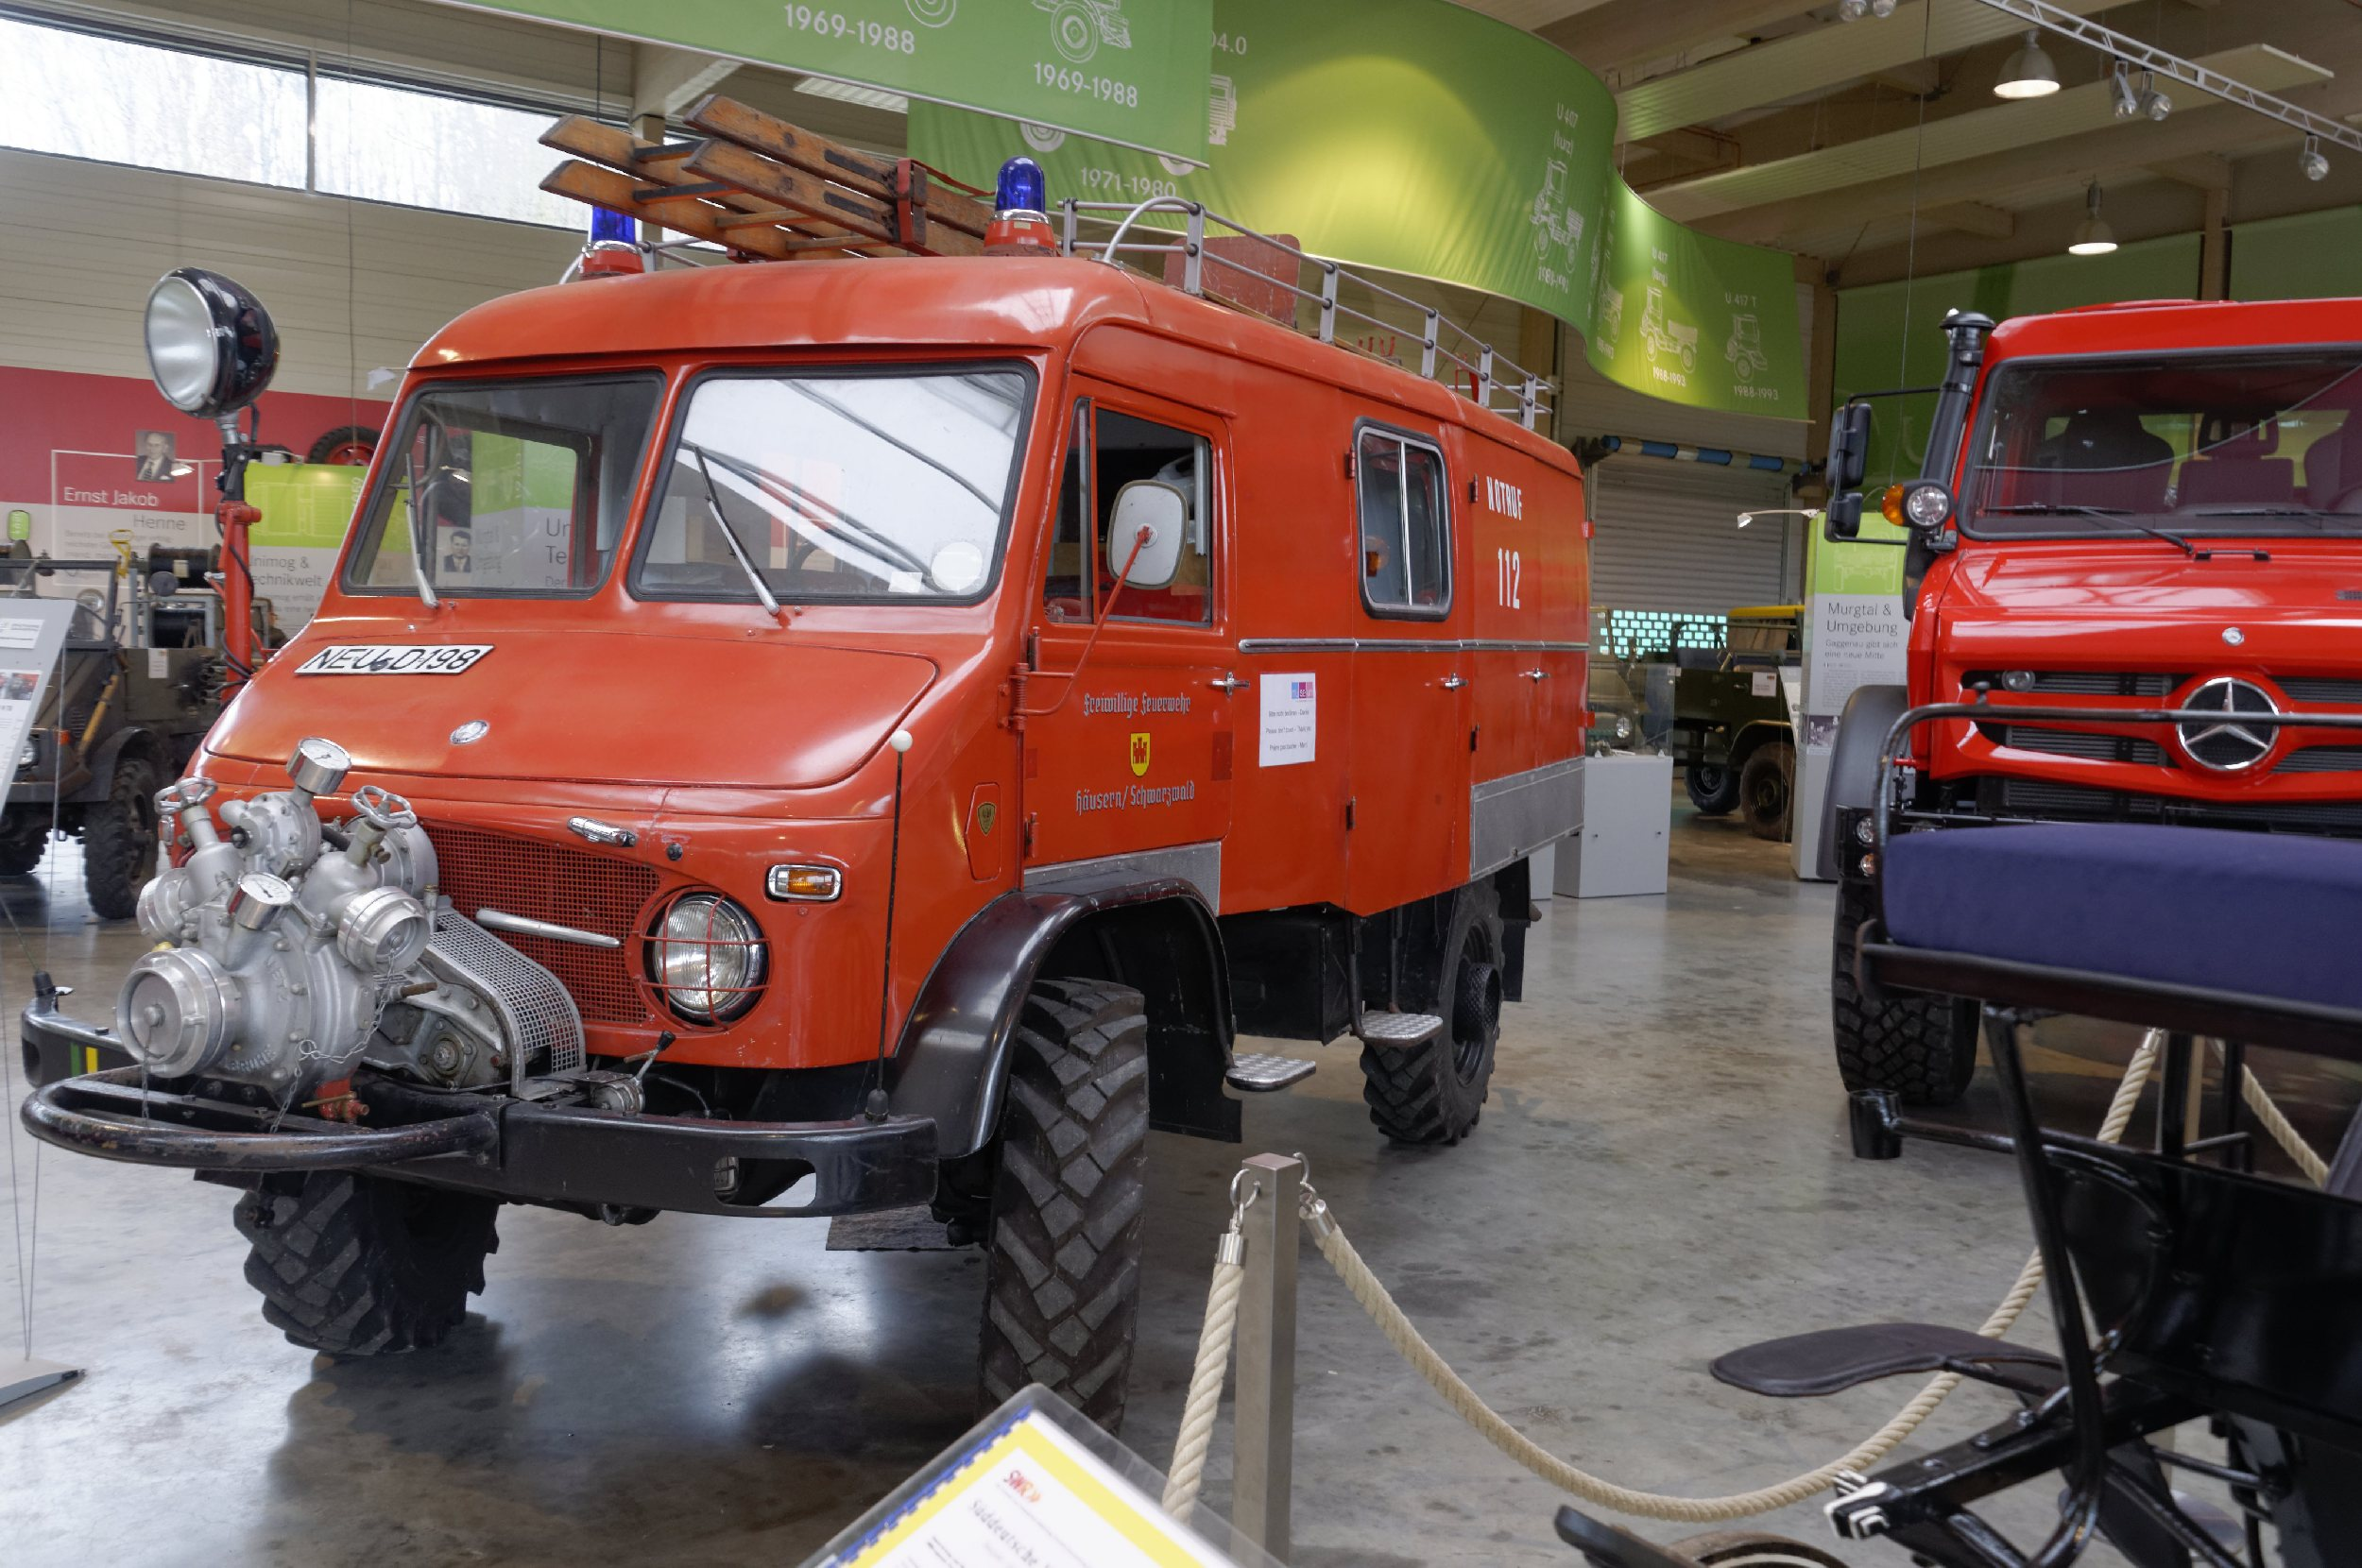 Gaggenau_2016_ Unimog Museum _by RaBoe_099 unimog 404 wikipedia unimog 404 wiring diagram at aneh.co